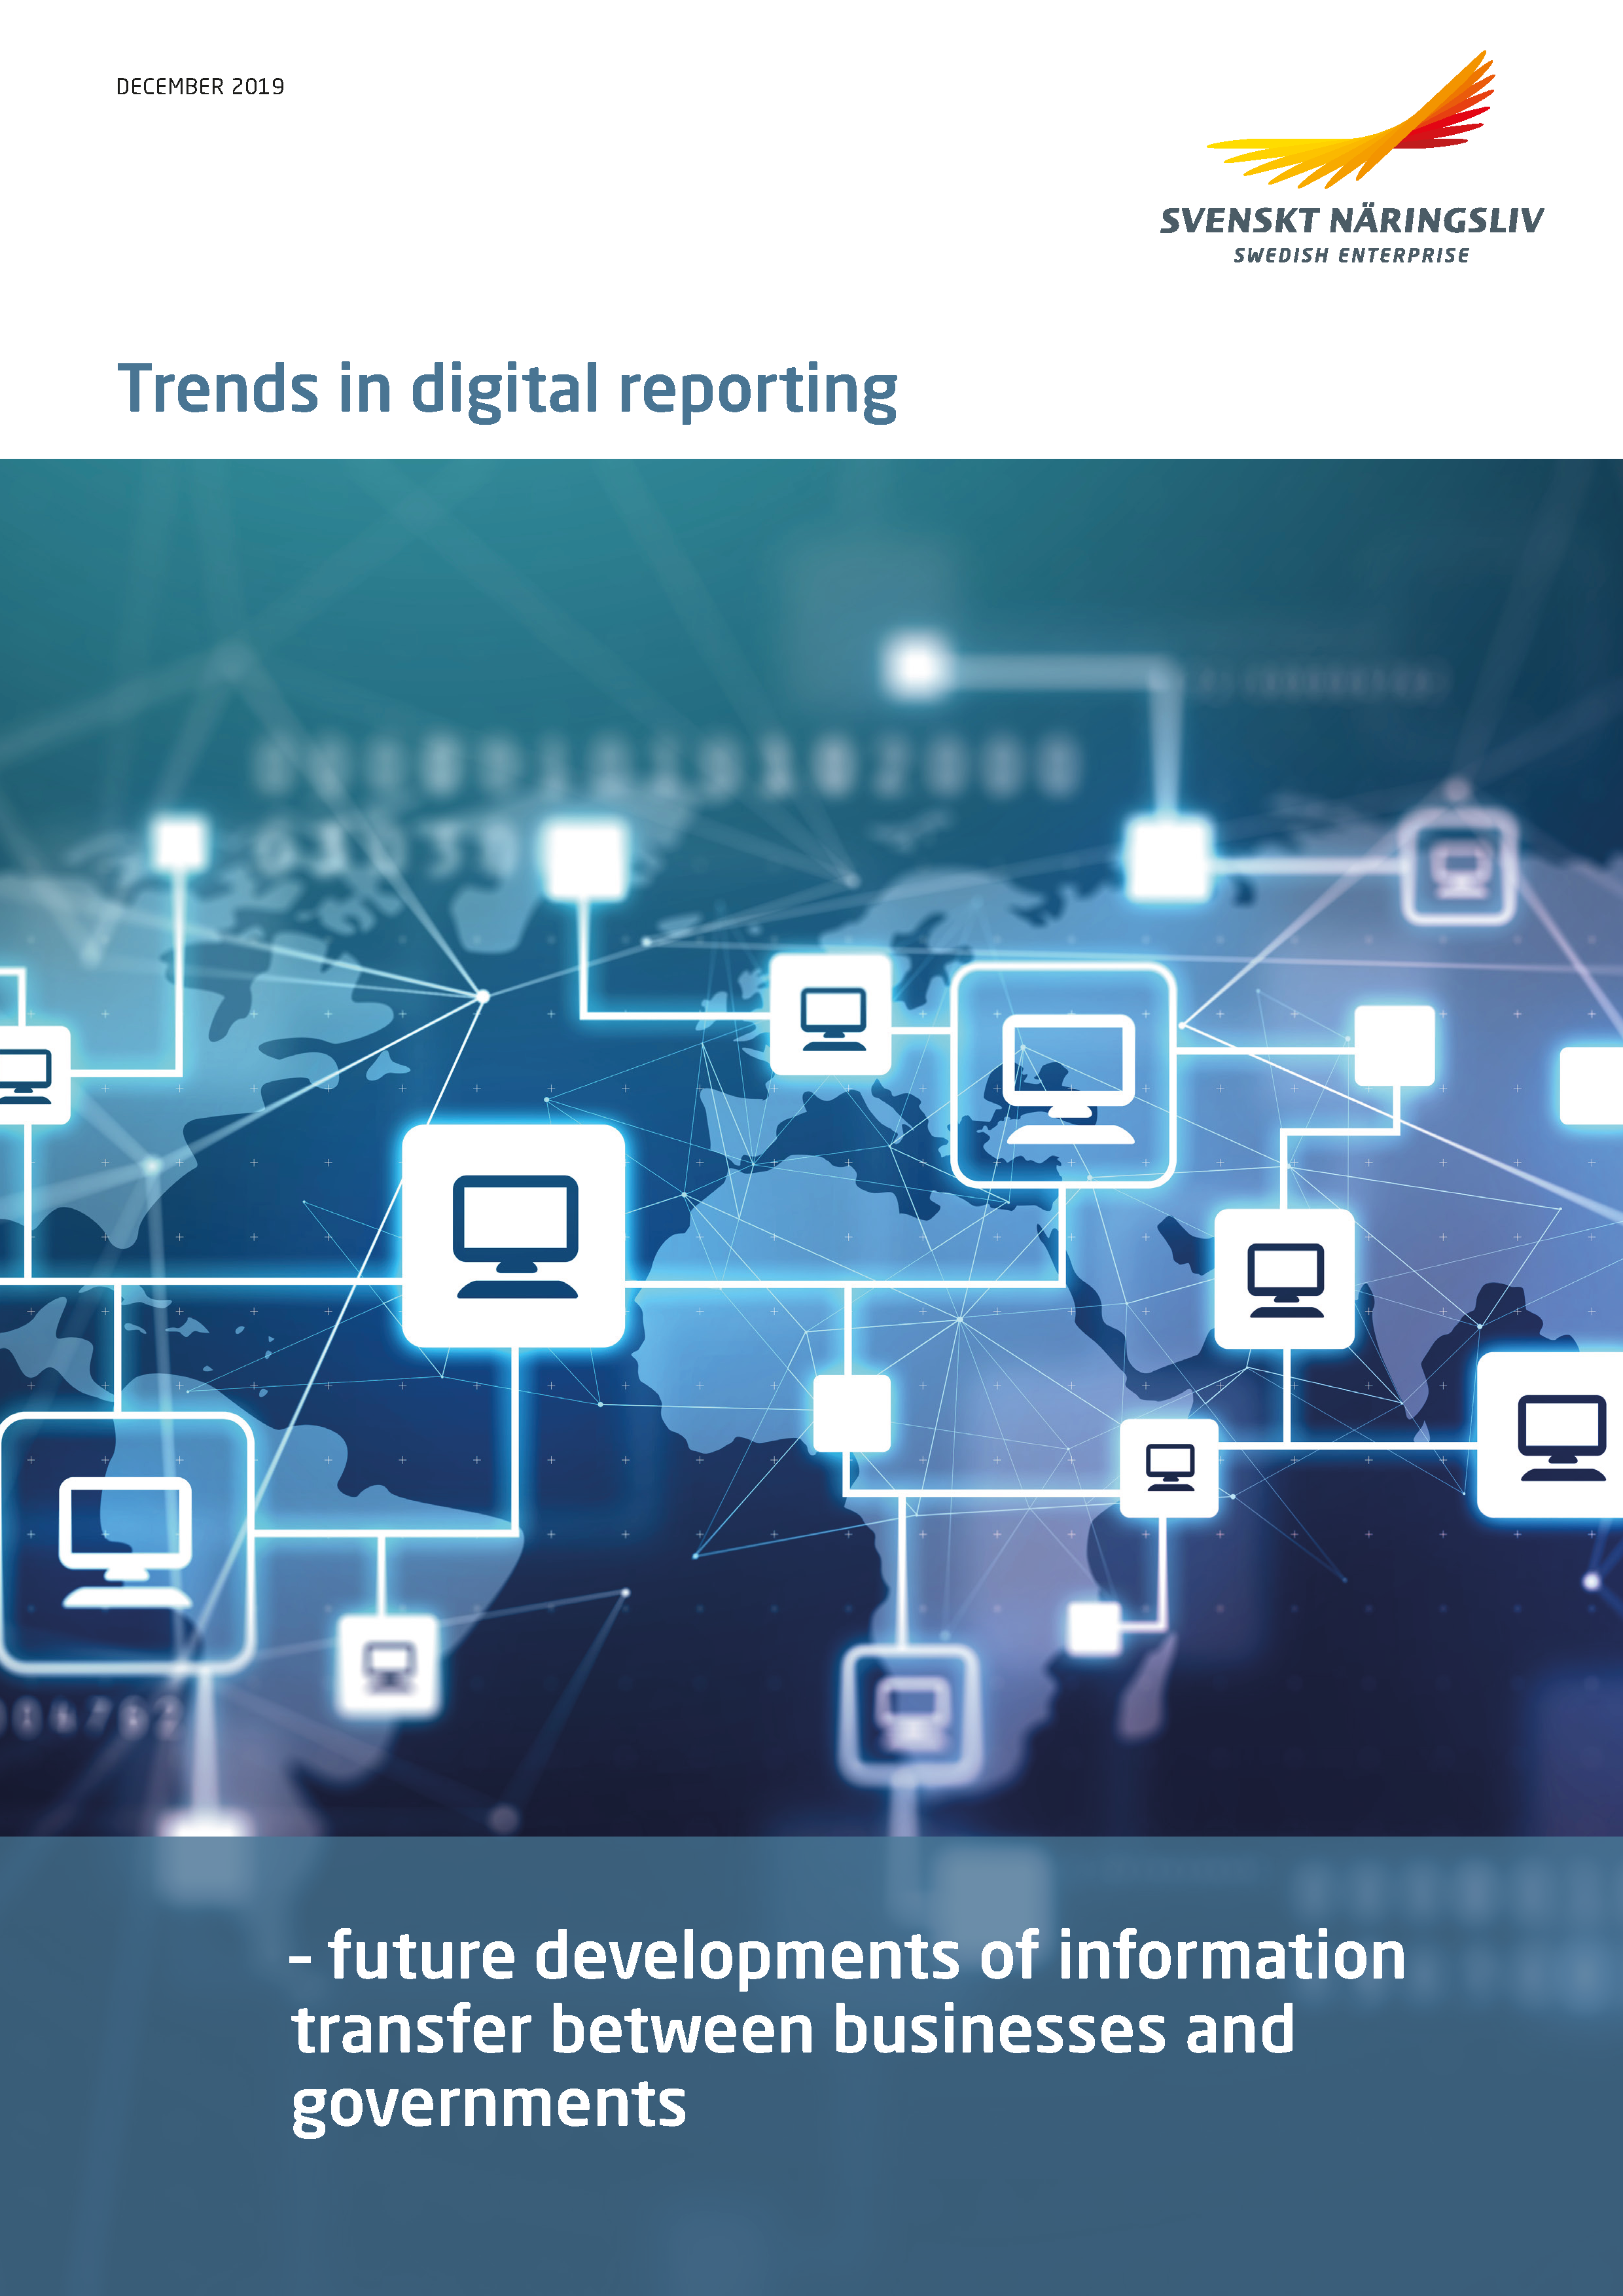 Trends in digital reporting - future developments of information transfer between businesses and governments